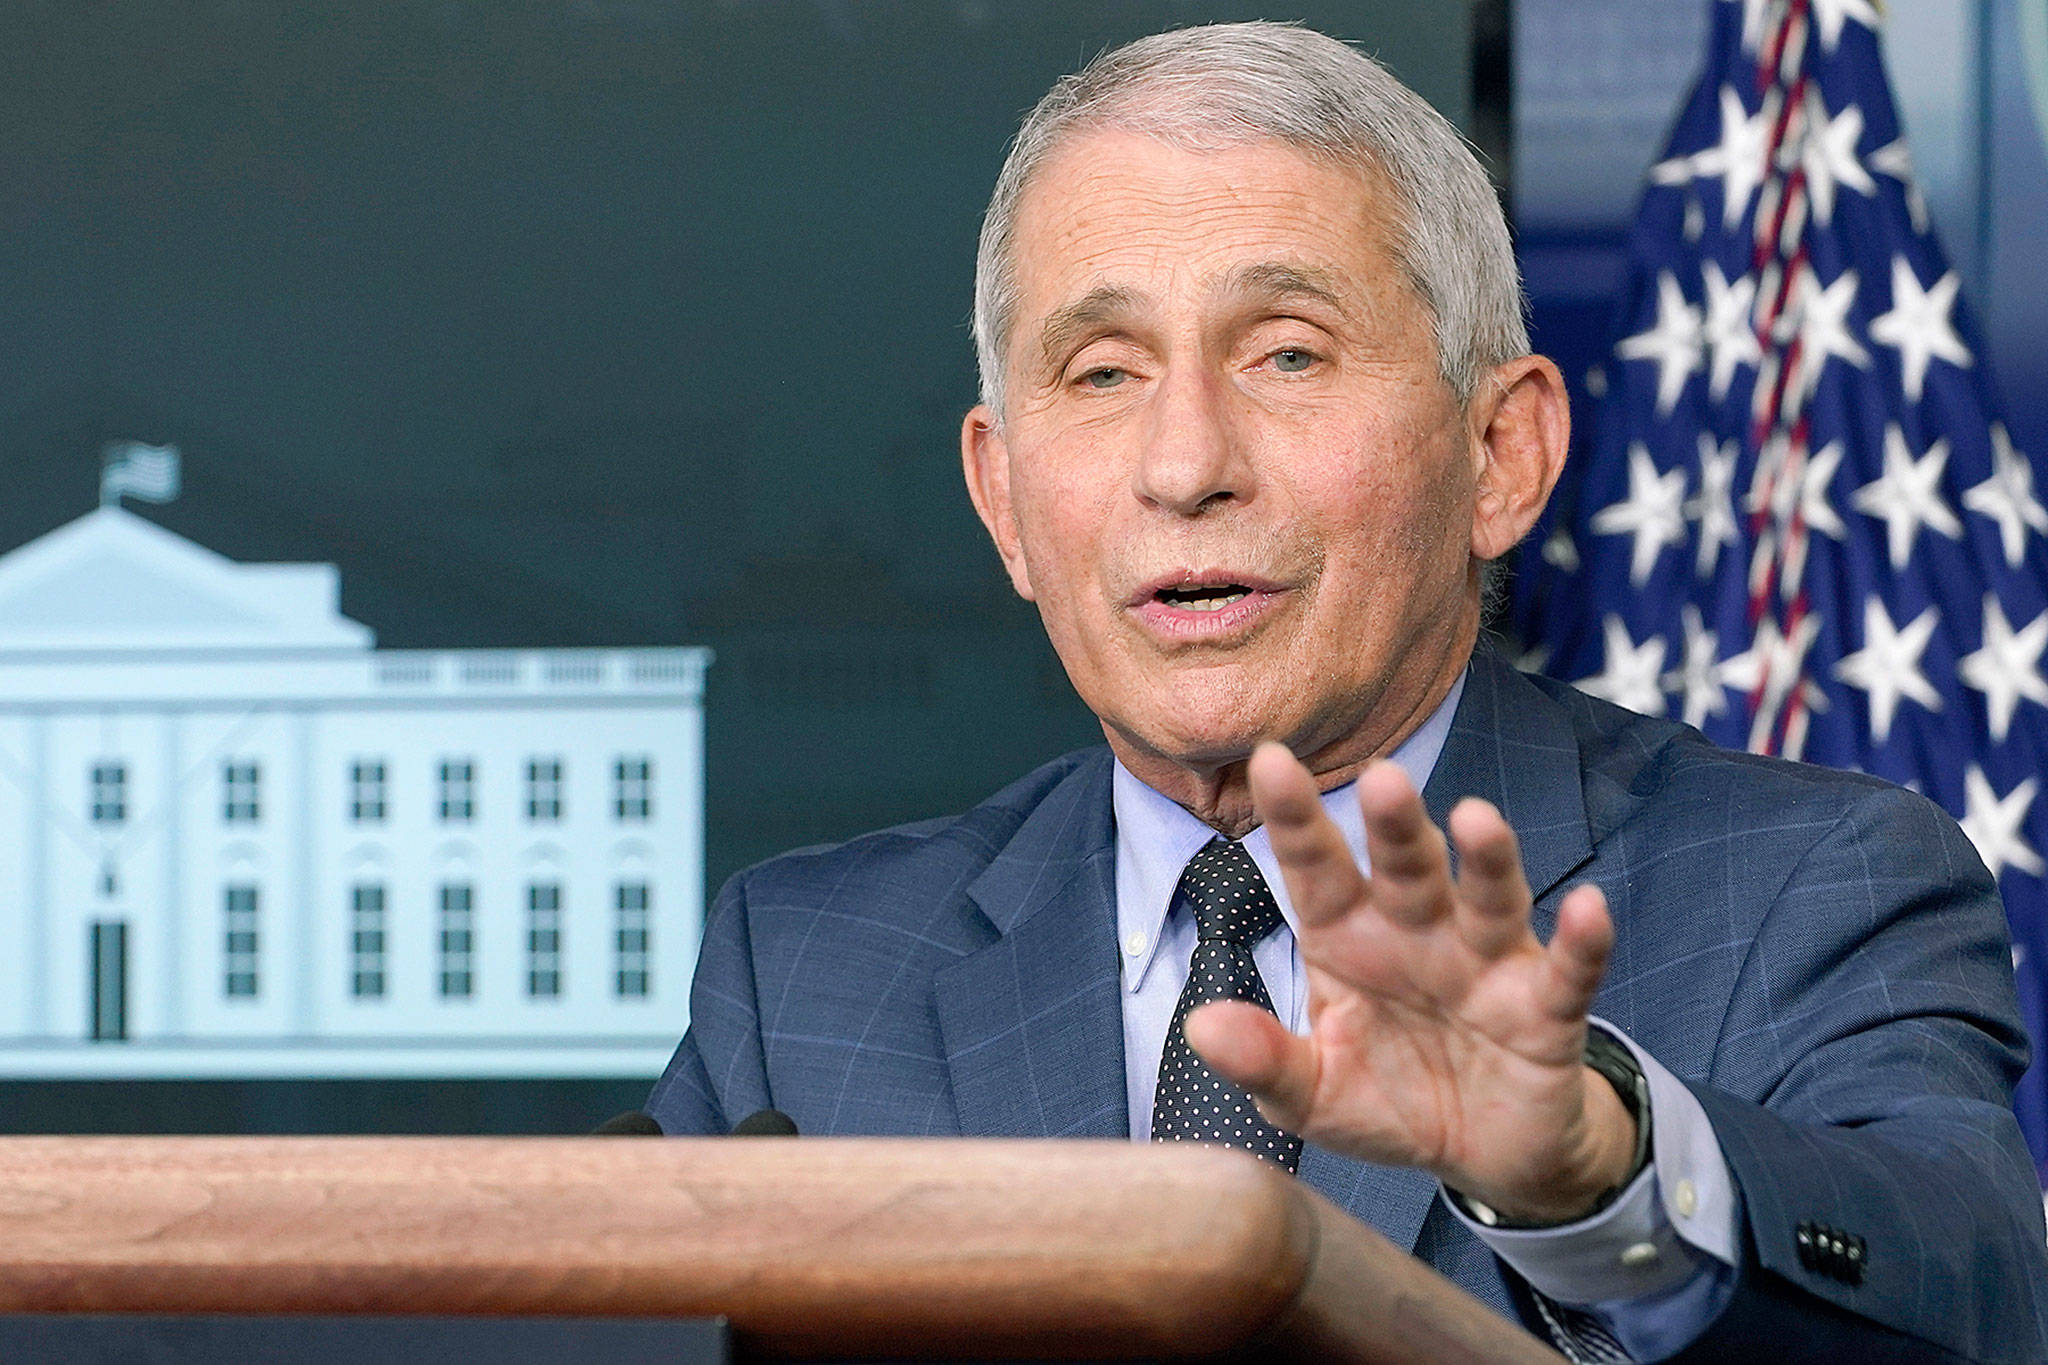 Dr. Anthony Fauci, director of the National Institute for Allergy and Infectious Diseases, speaks Nov. 19 during a news conference with the coronavirus task force at the White House in Washington, D.C. (AP Photo/Susan Walsh)